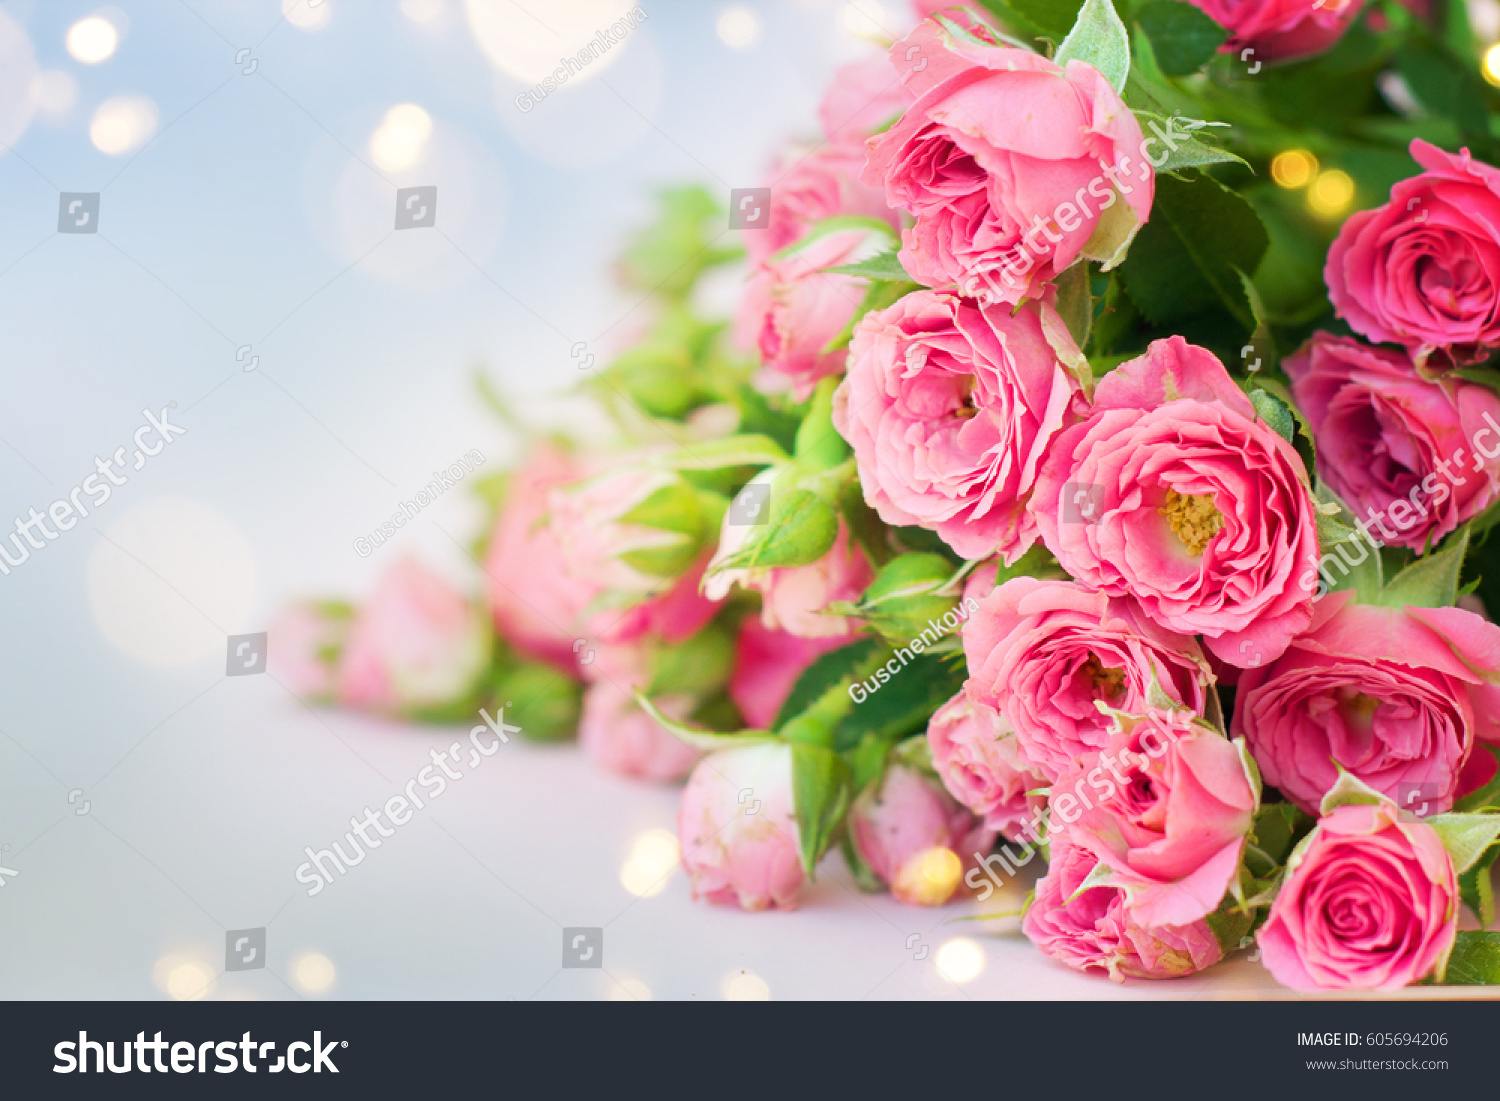 Roses Mothers Day Stock Photo 605694206 - Shutterstock